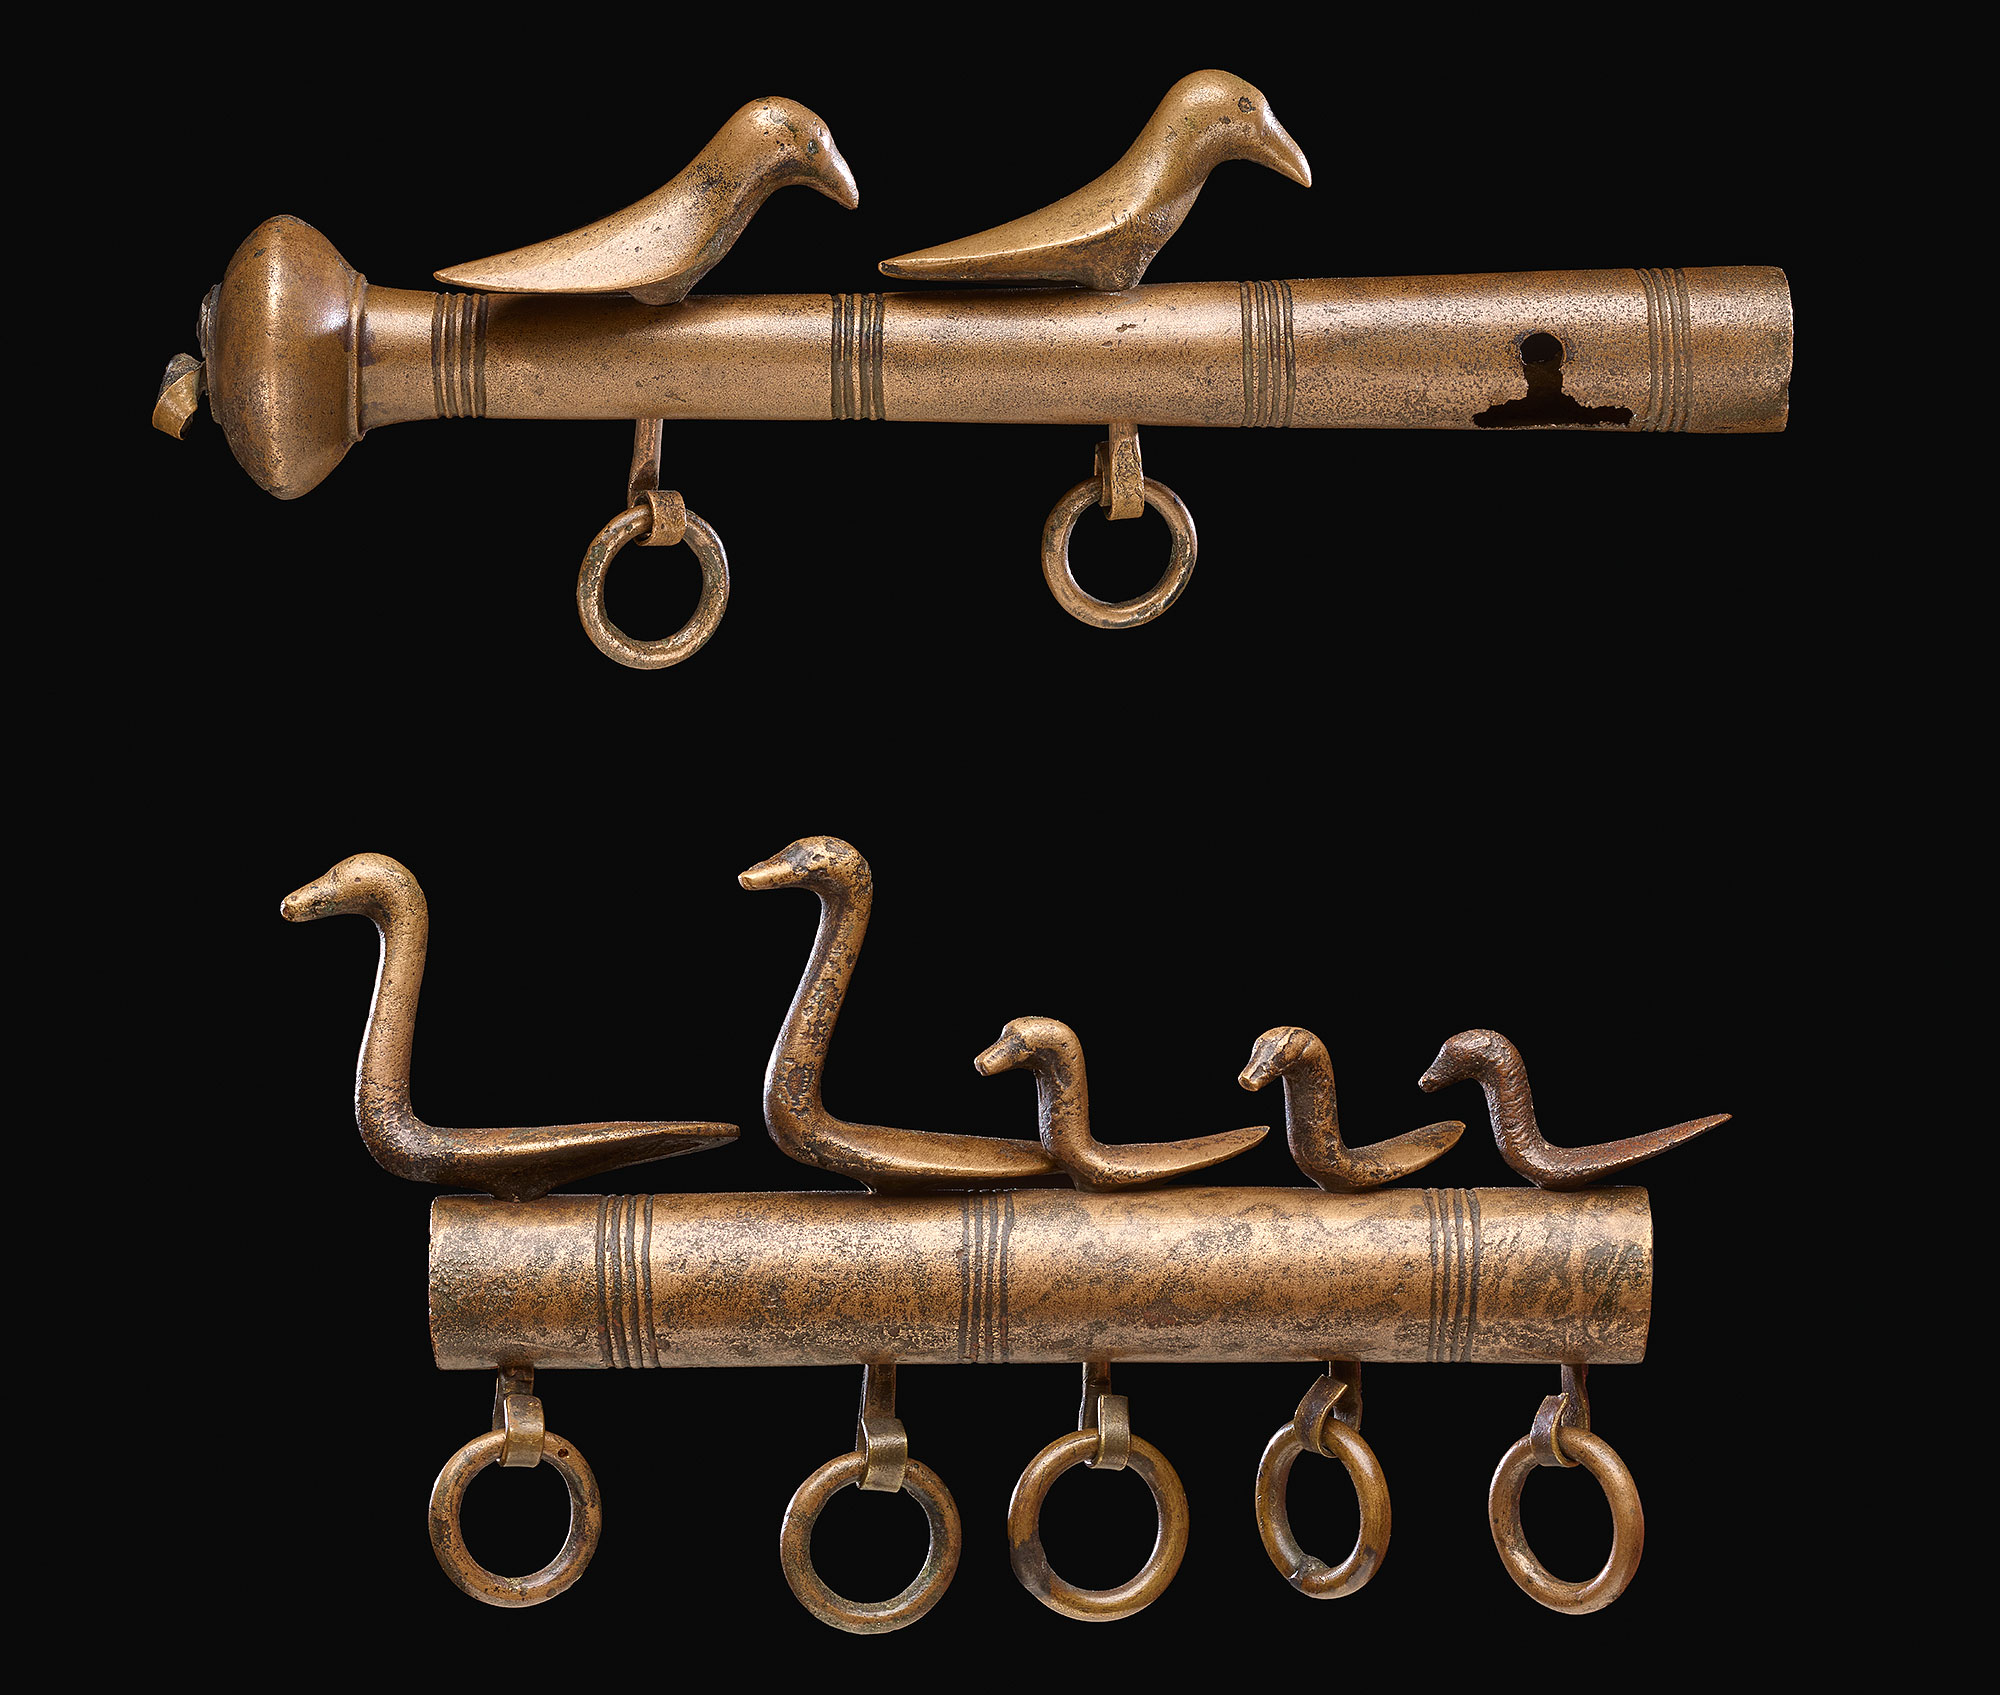 The birds on the Dunaverney flesh-hook, which dates from about 1100–800 BC.  They are some of the earliest objects known to have been made using a lost-wax process, when molten metal is poured into a wax mould